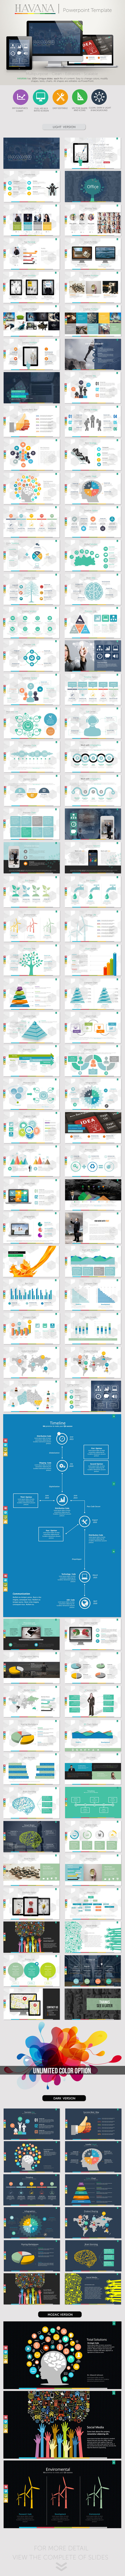 GraphicRiver Havana PowerPoint Presentation 8998077